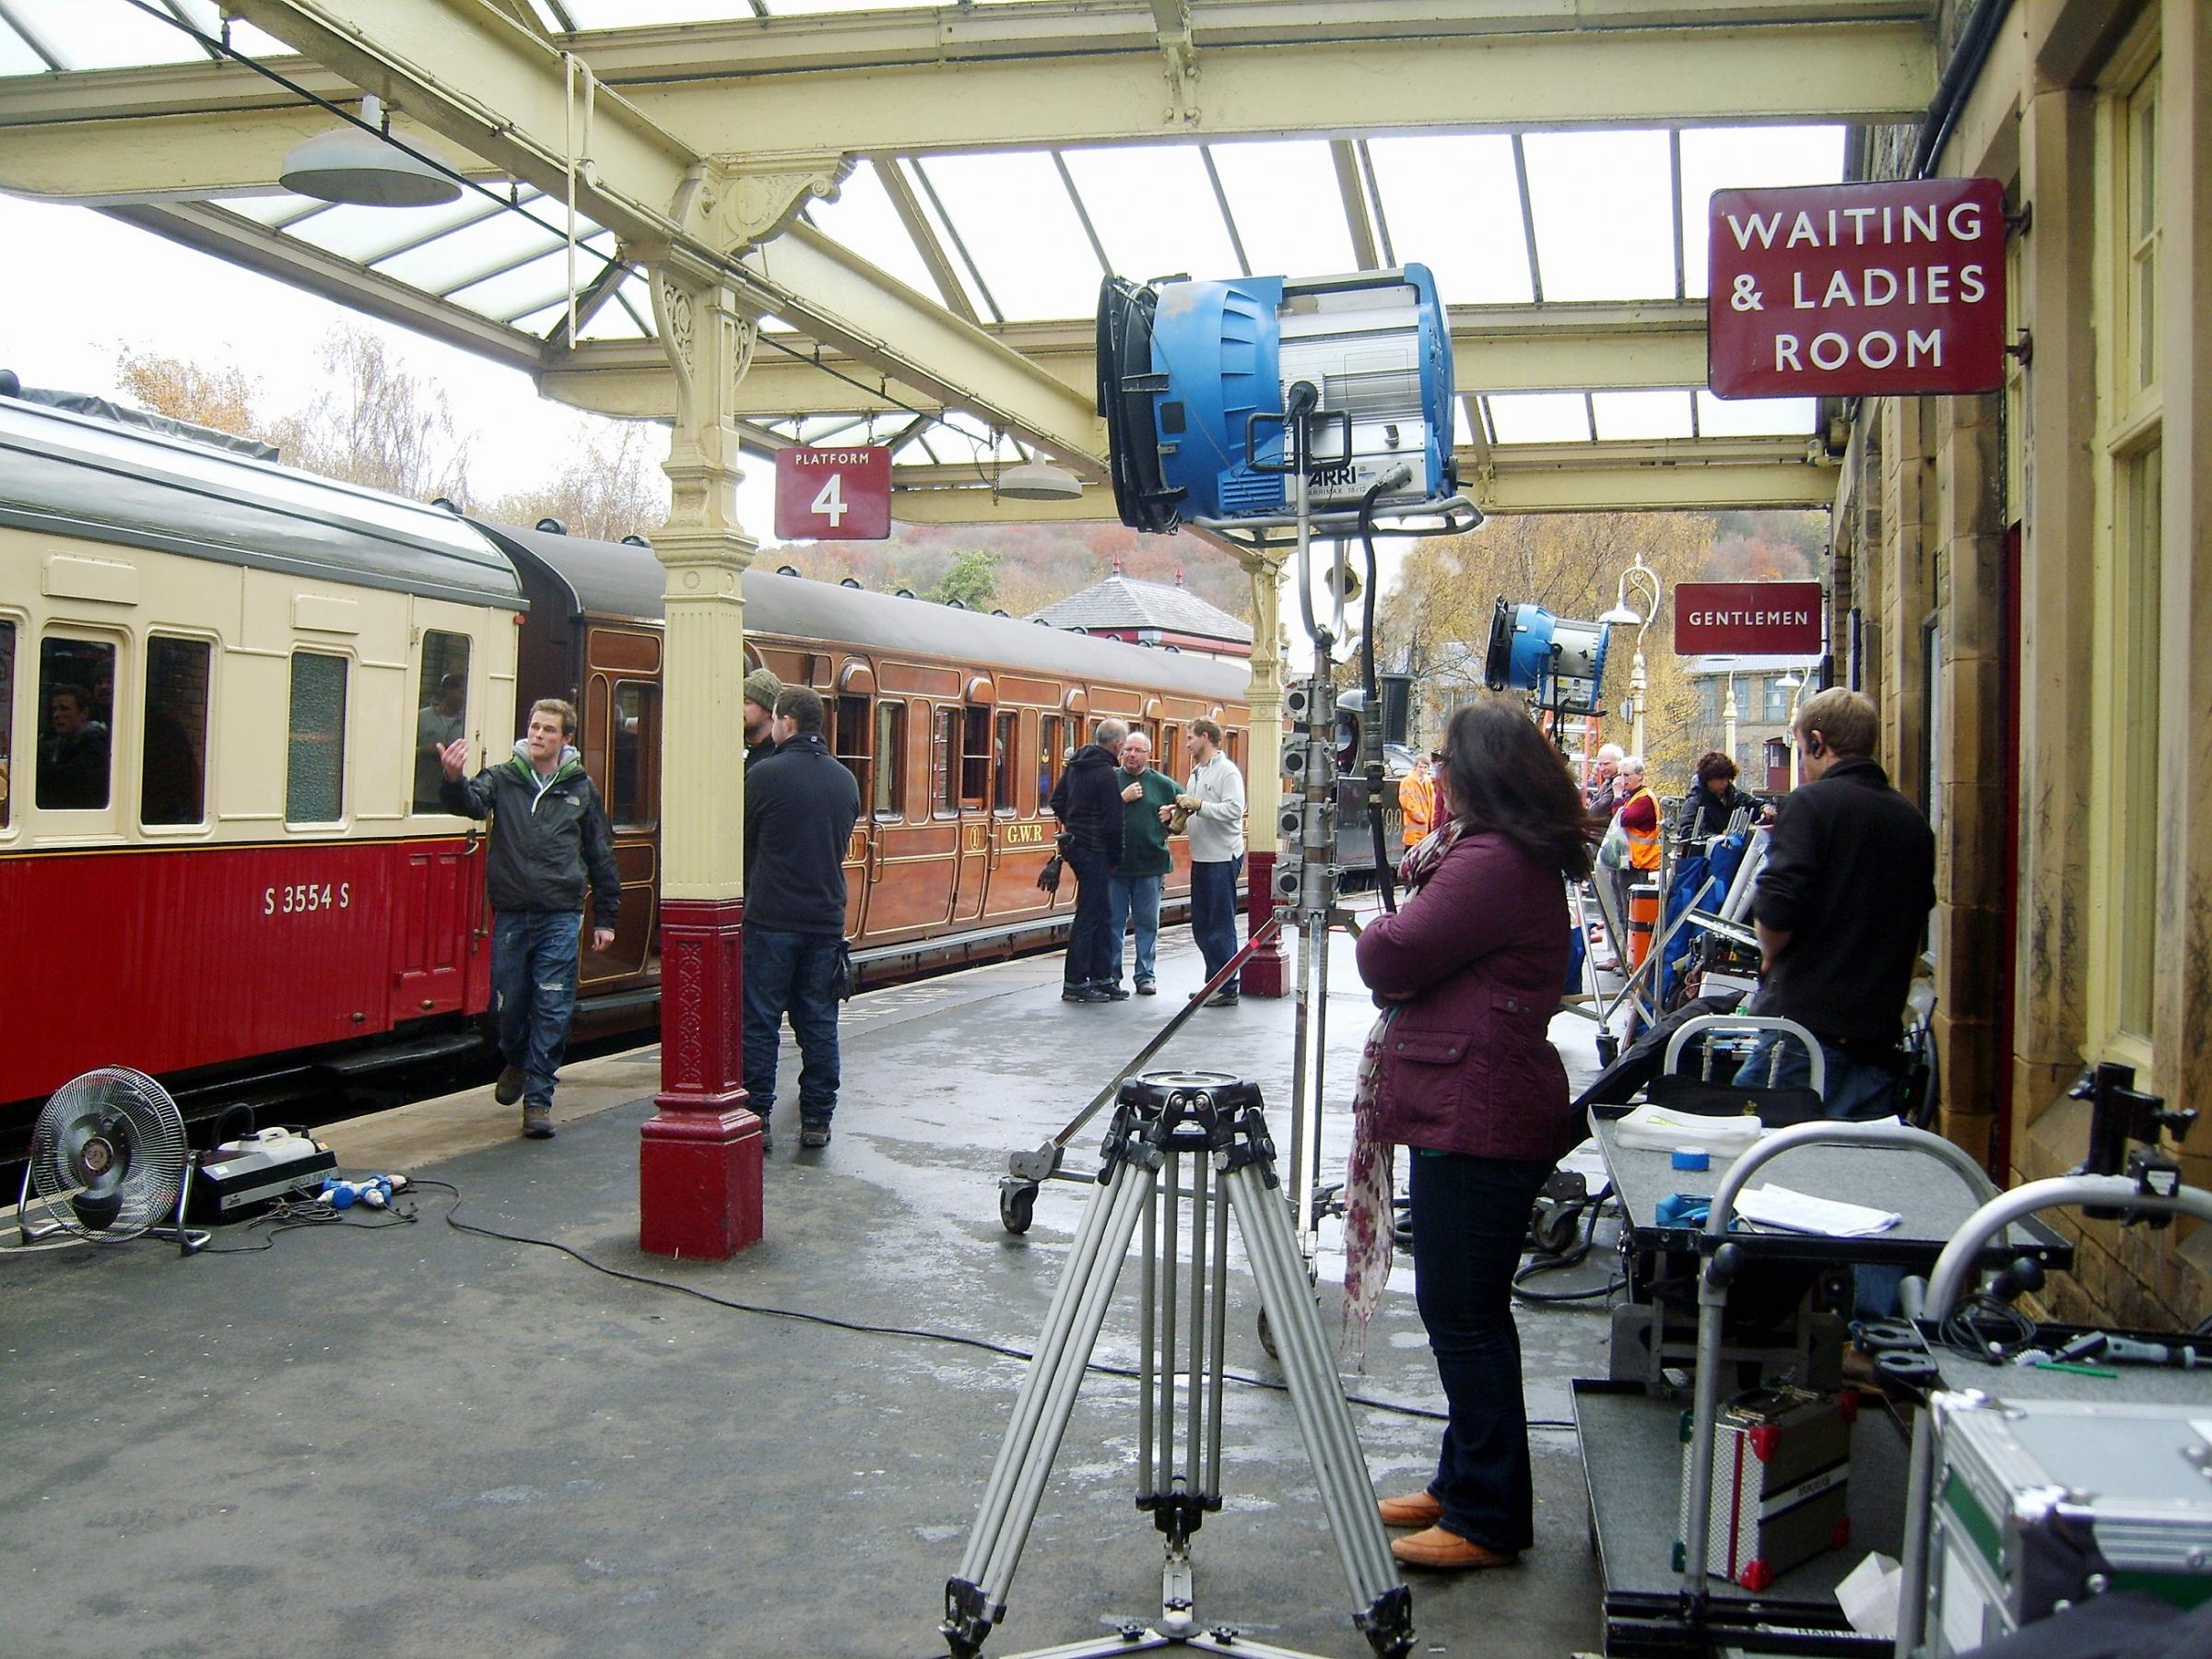 Filming at Keighley Railway Station for the BBC drama Peaky Blinders.